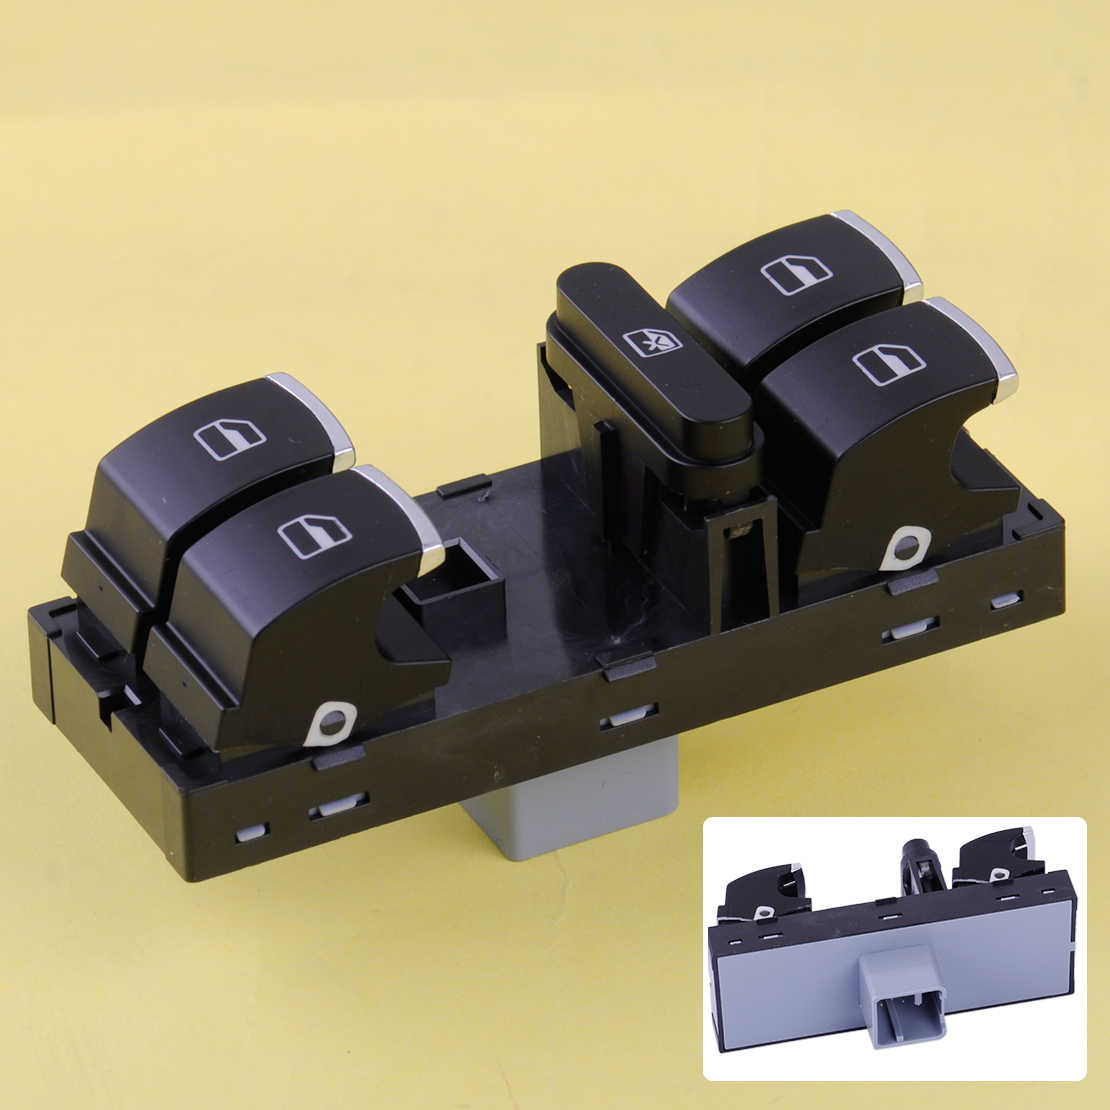 Terrific Beler 3C8959857 Car Power Window Switch Fit For Vw Passat Jetta Golf Rabbit Tiguan Amarok Seat Altea Ibiza Leon Toledo Iii Gmtry Best Dining Table And Chair Ideas Images Gmtryco